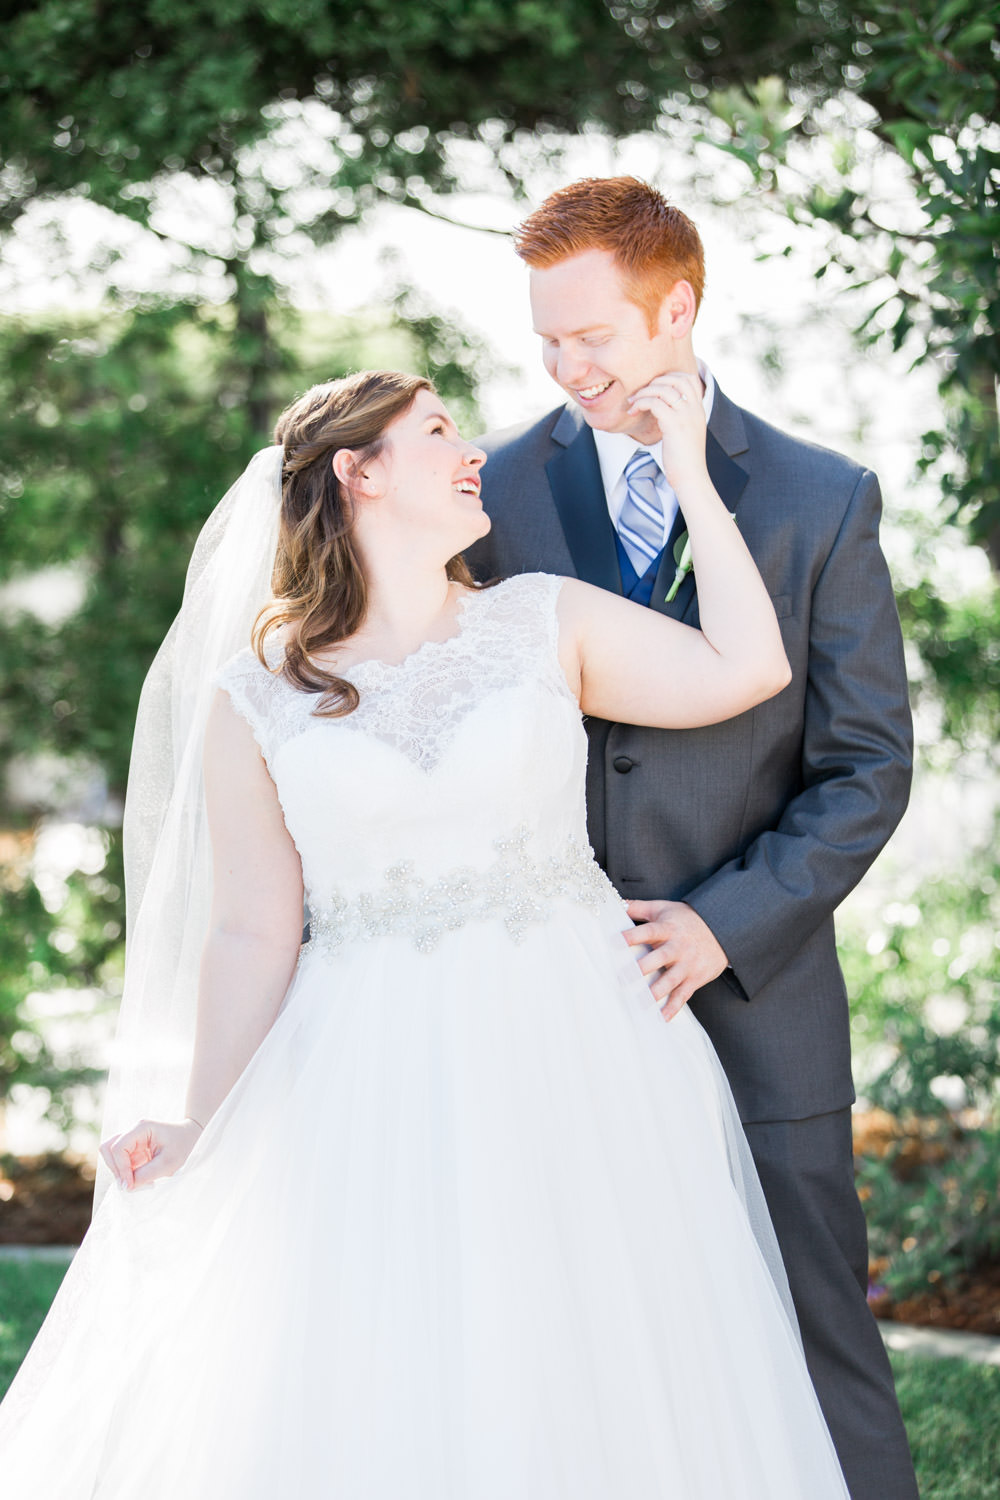 Bride and groom portraits for a brunch wedding at Tom Ham's Lighthouse, Cavin Elizabeth Photography